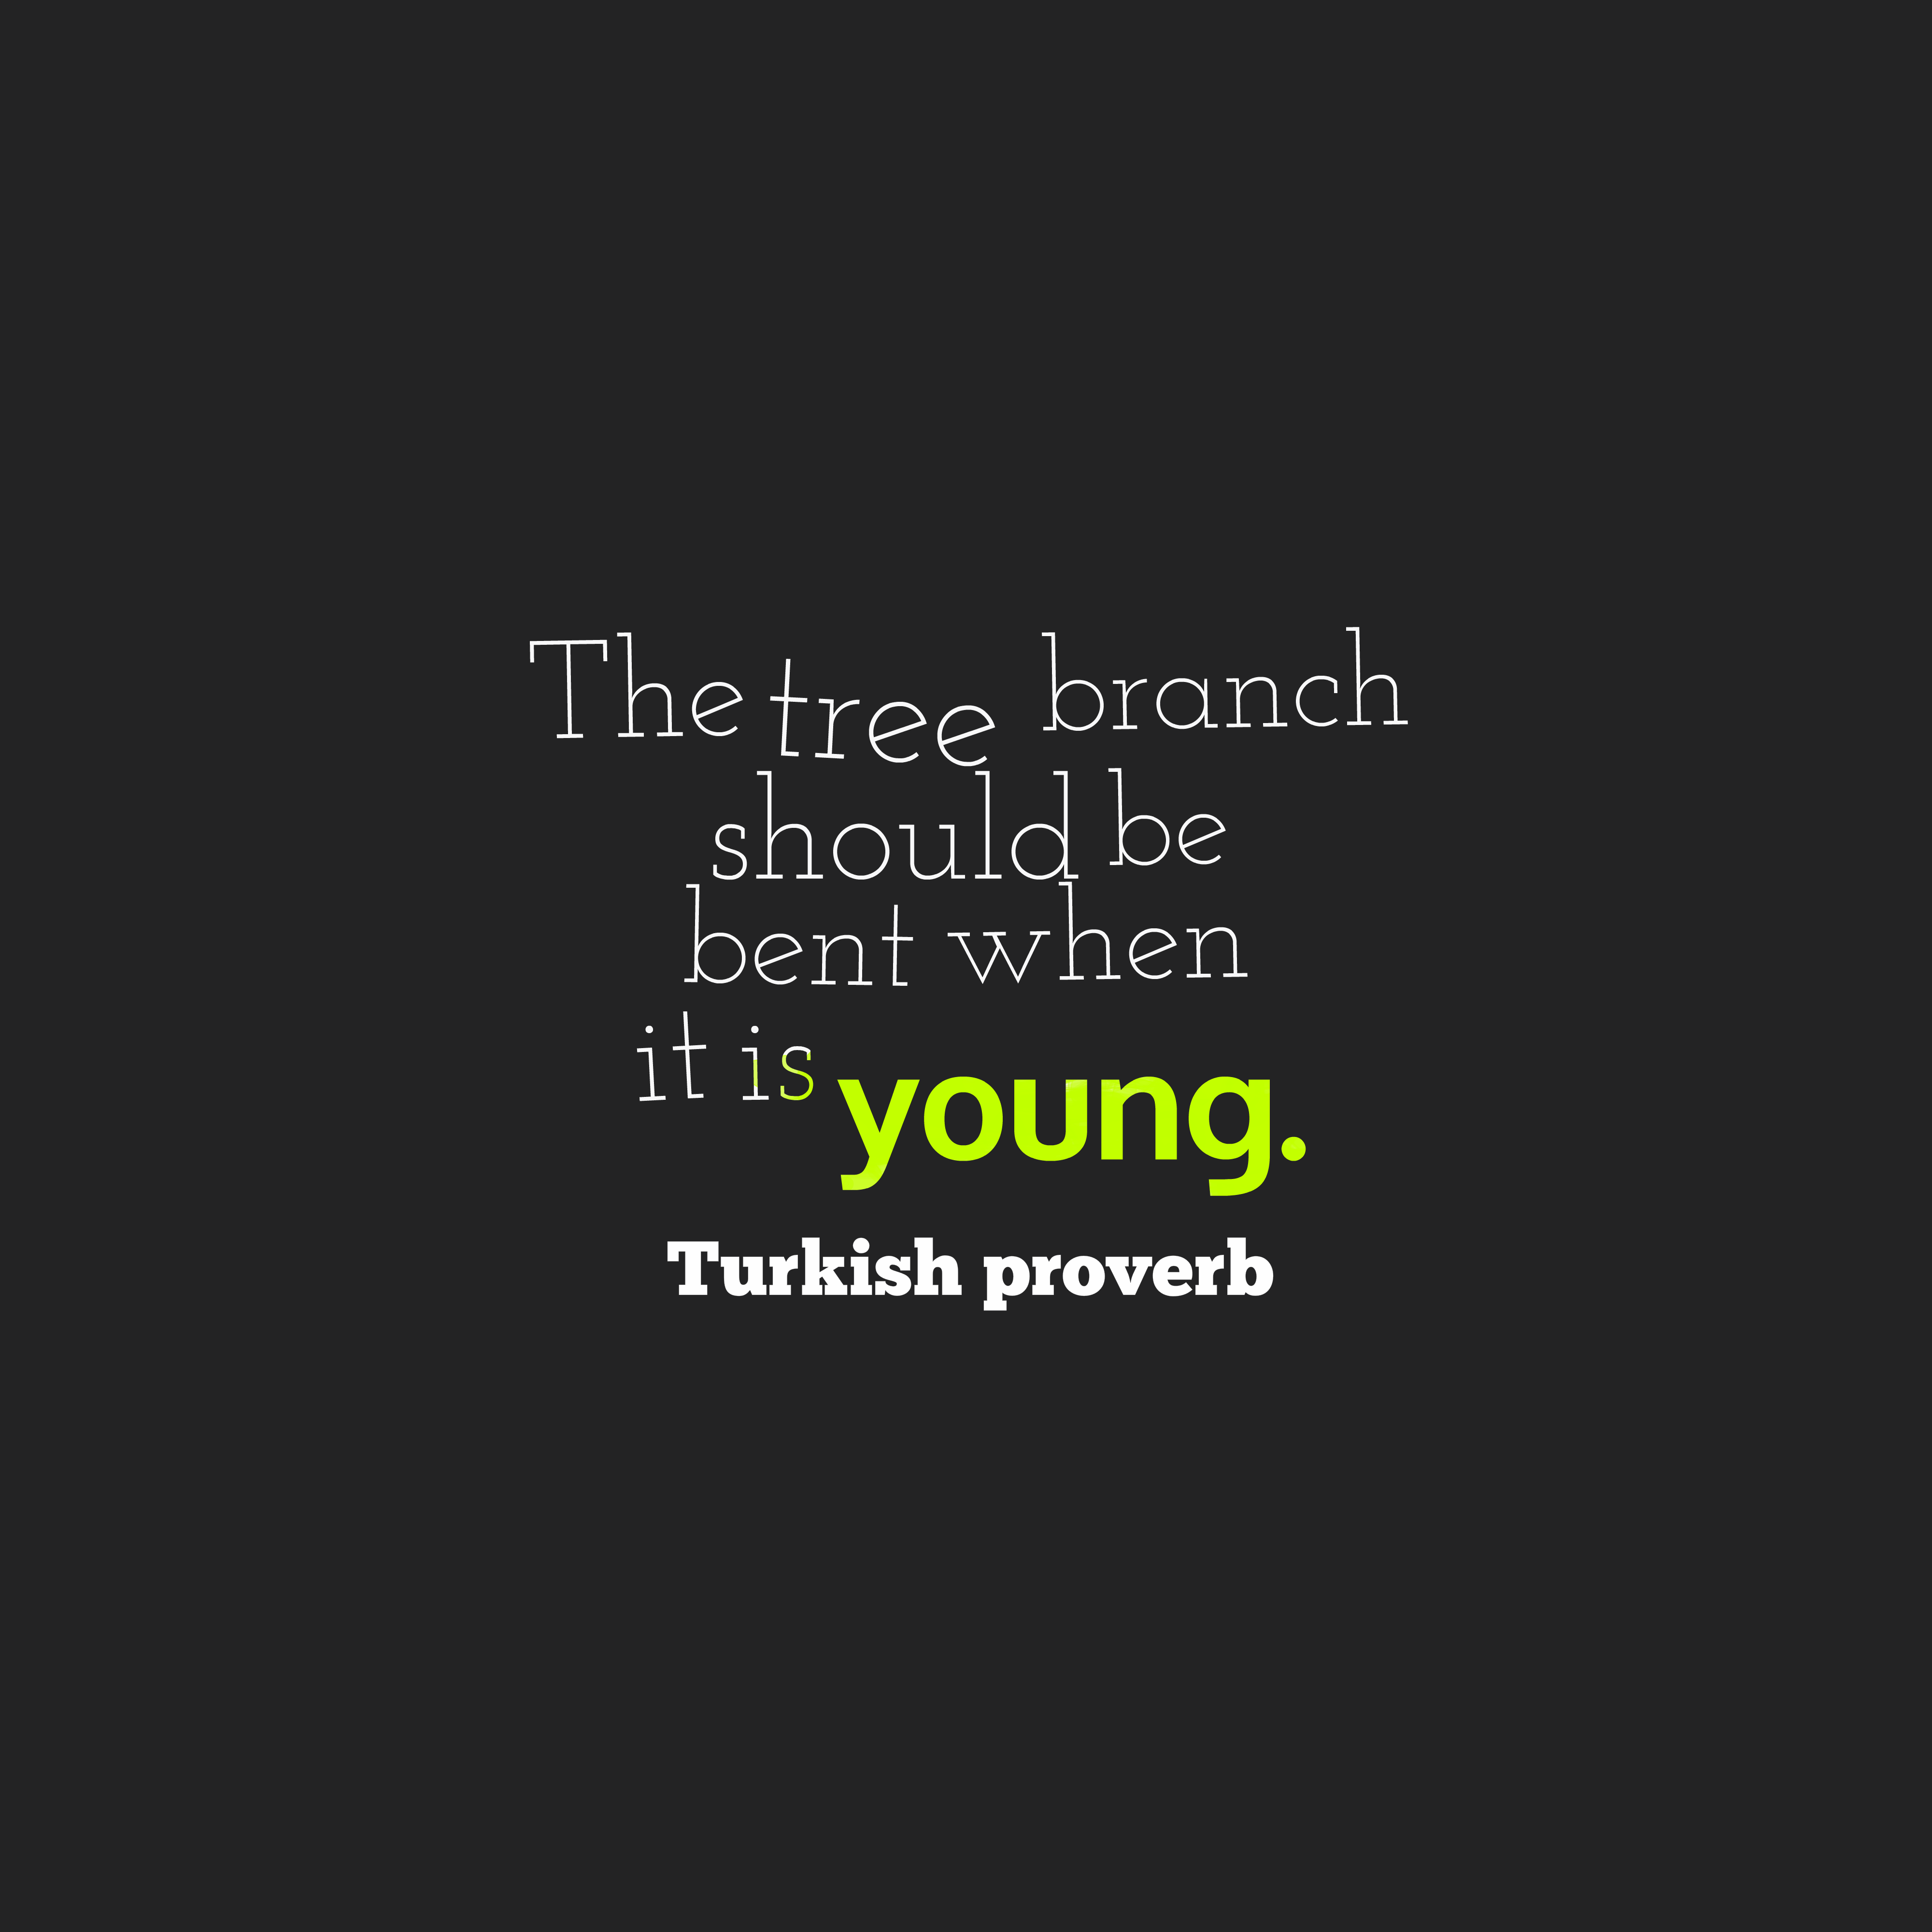 Turkish Proverb About Life.